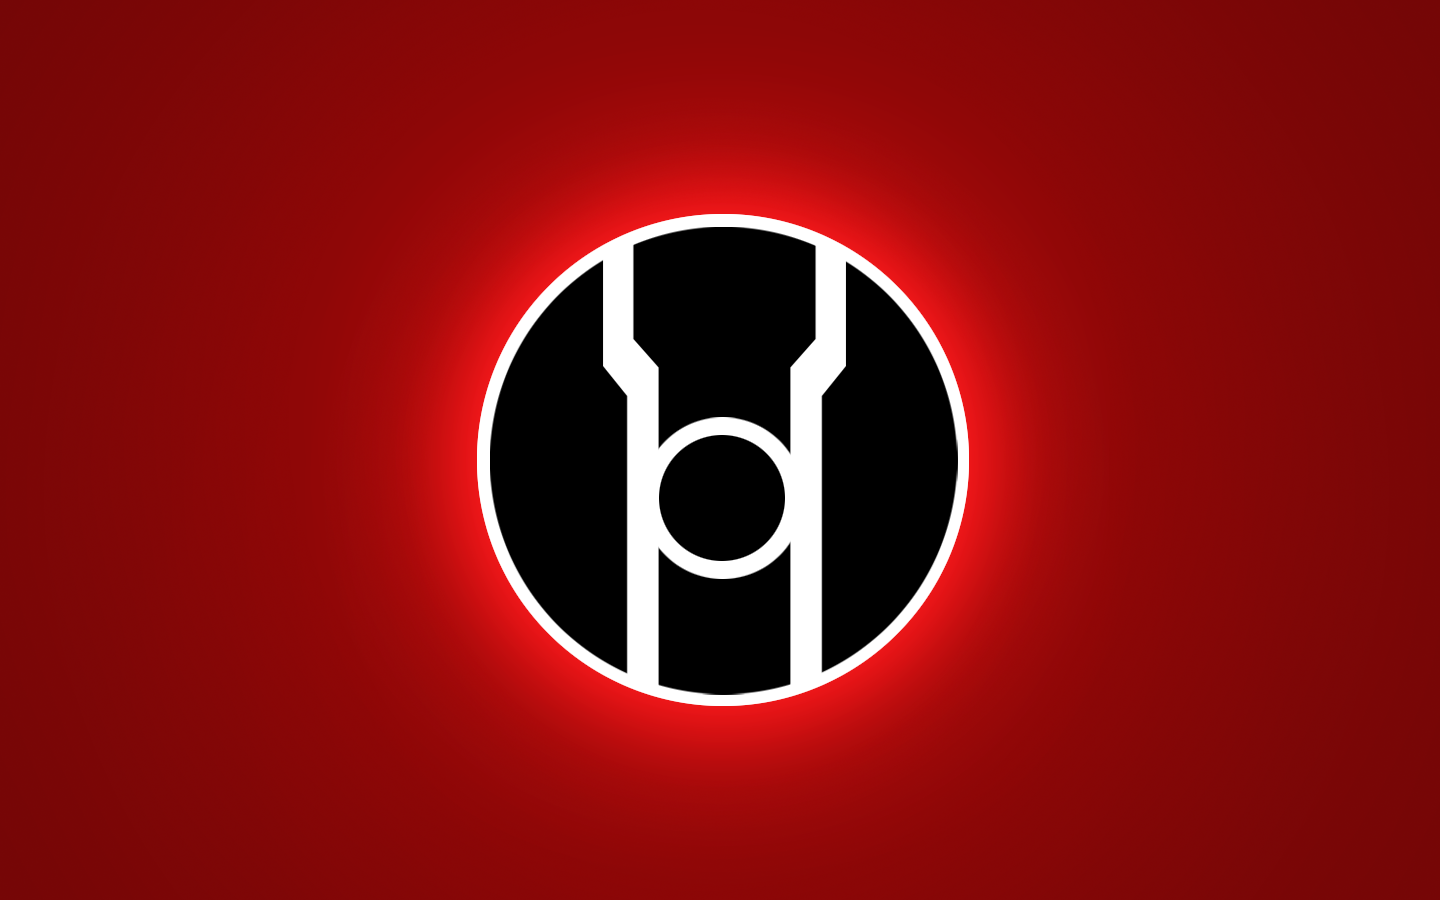 Red lantern corps symbol wallpaper - photo#20